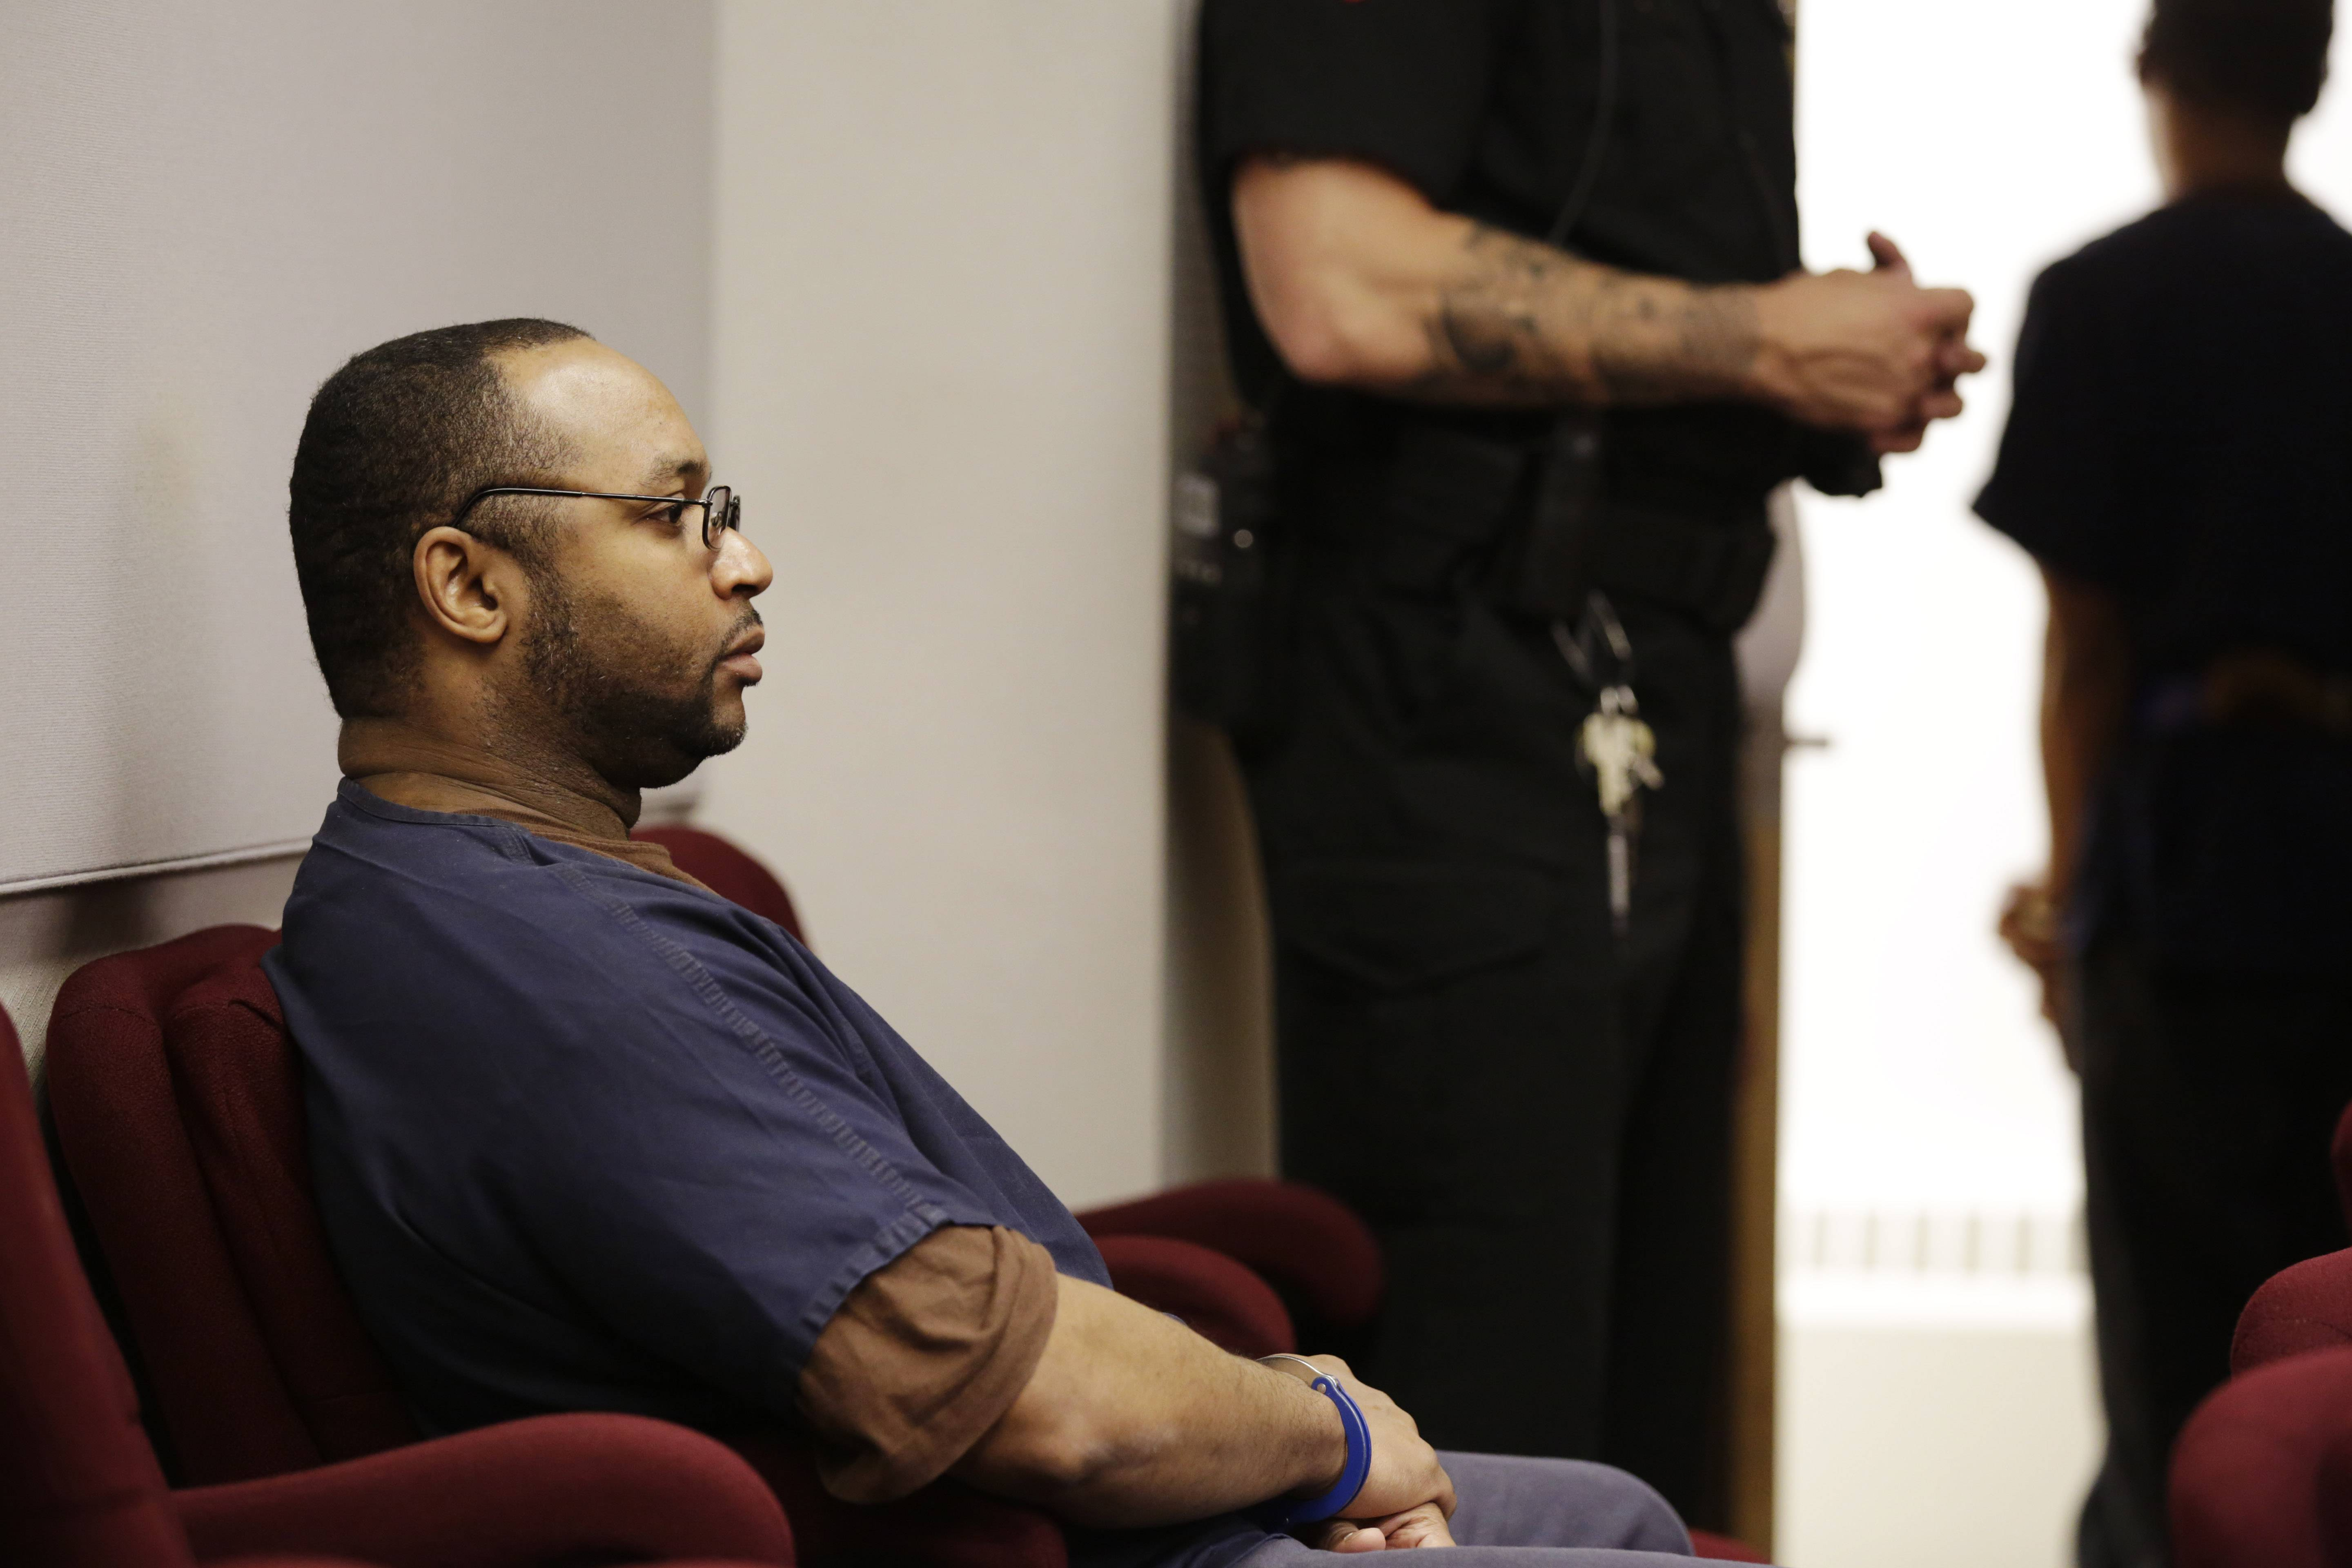 Chicago man gets life in prison for 1994 murder of Waukegan store owner